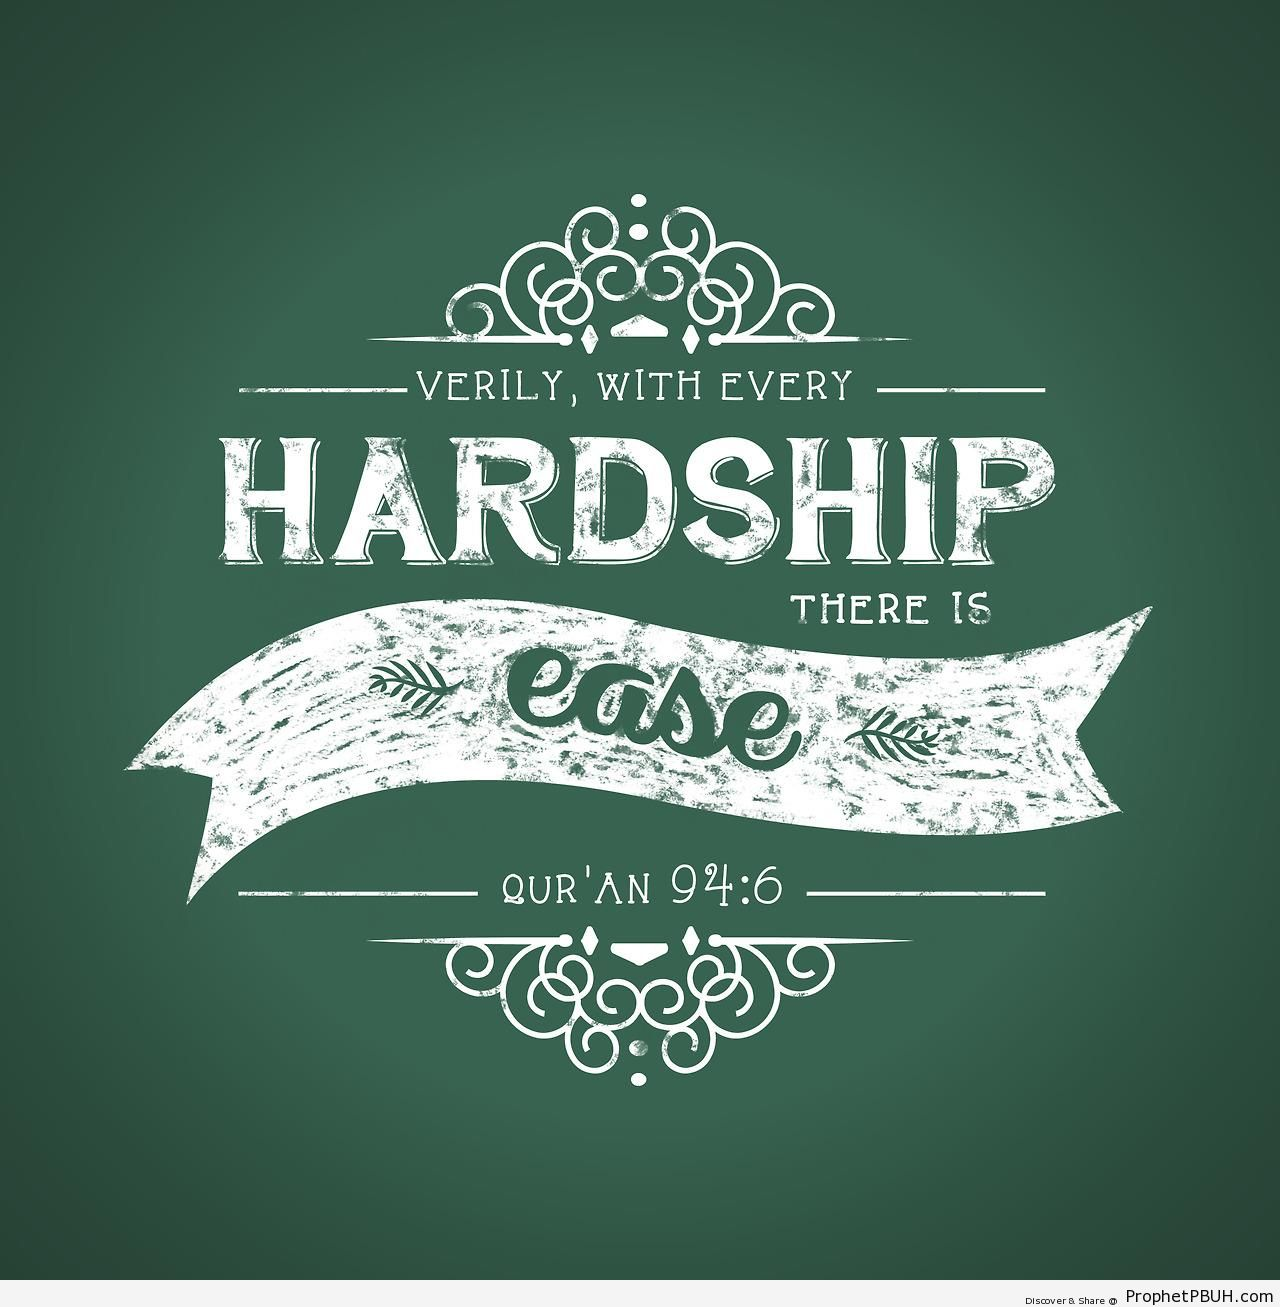 Verily, with every hardship there is ease - Islamic Quotes